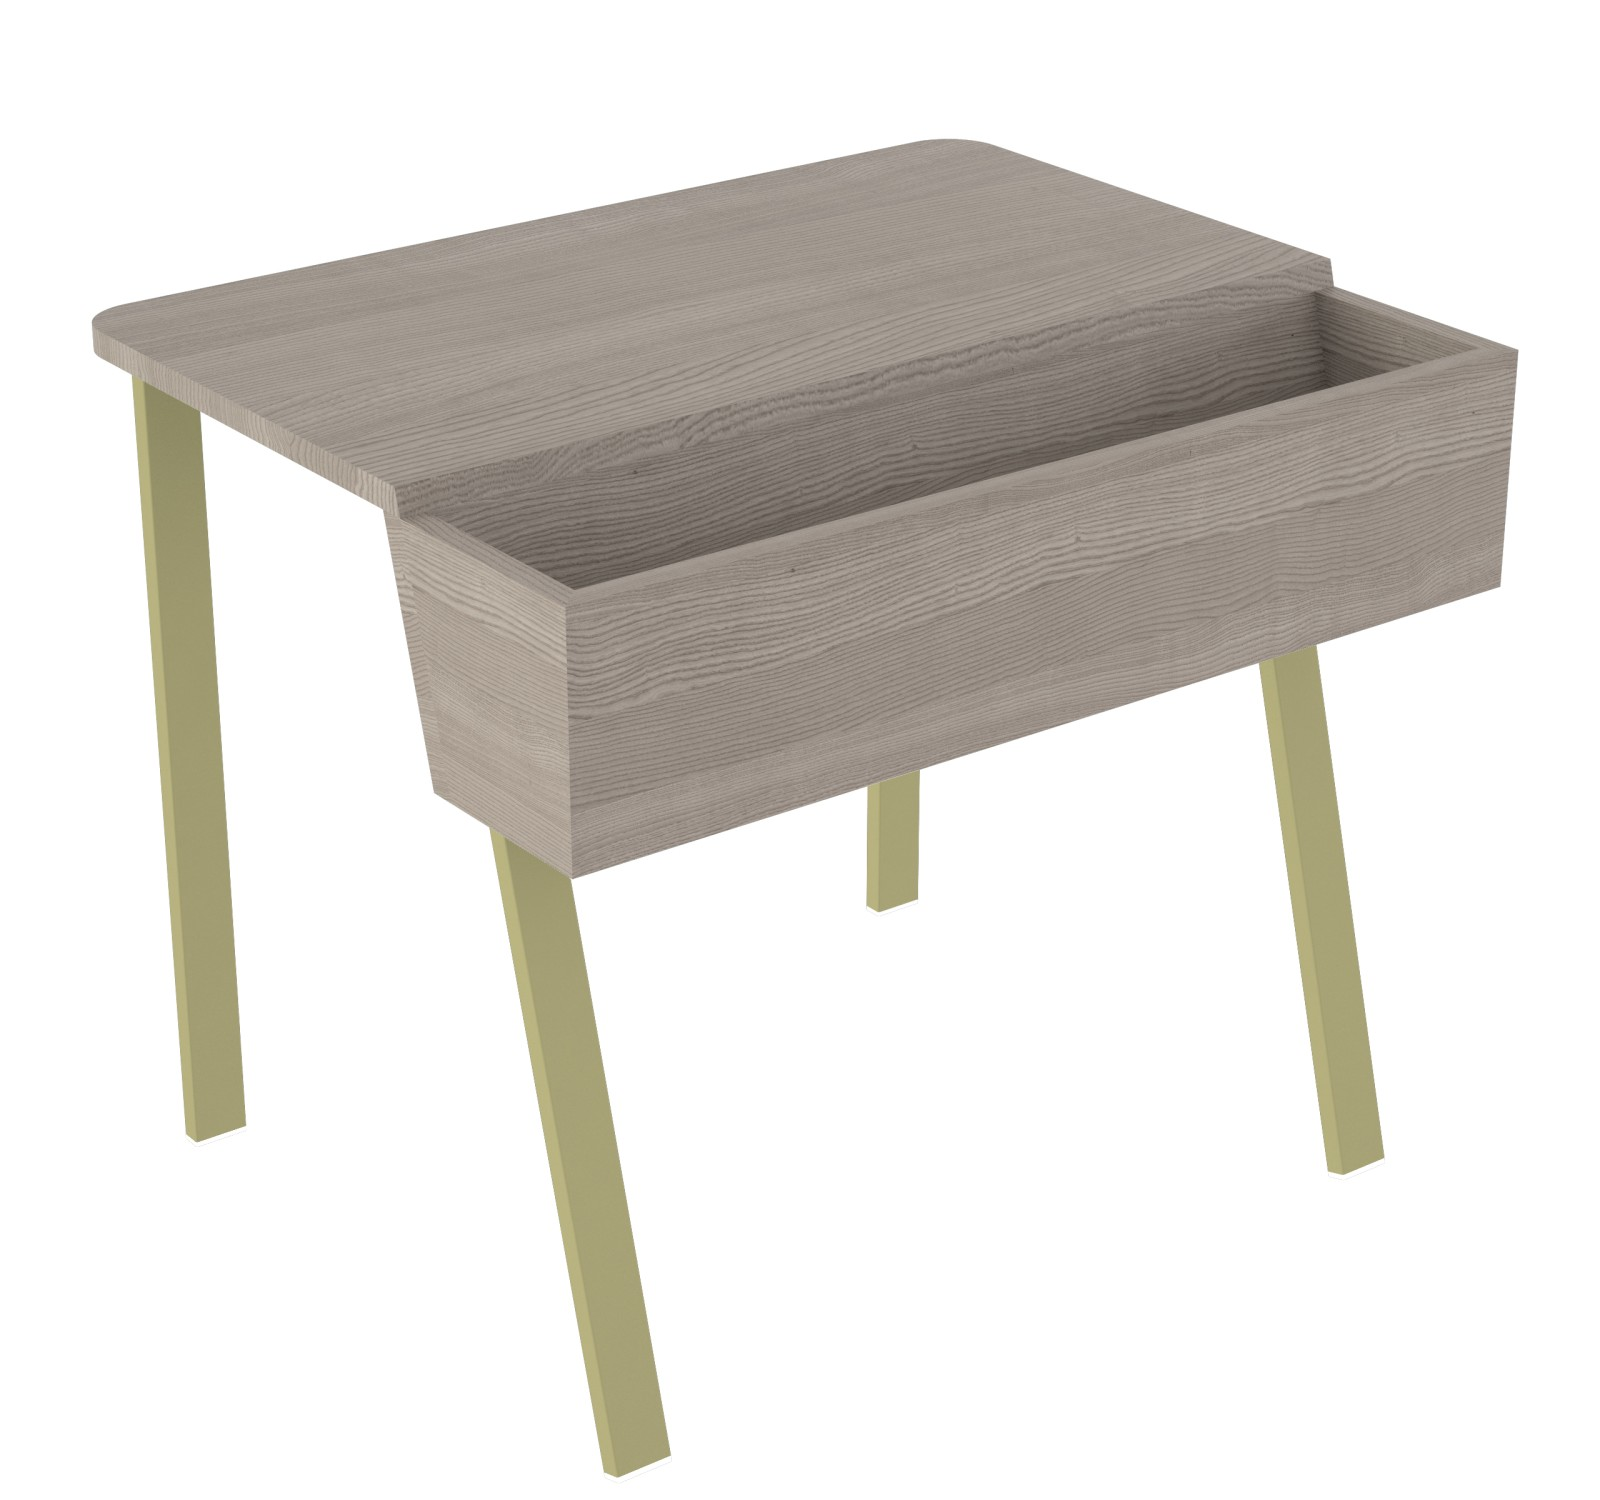 Wing Desk for One Wing desk for One-grey stained solid ash tabletop-olive green metal frame